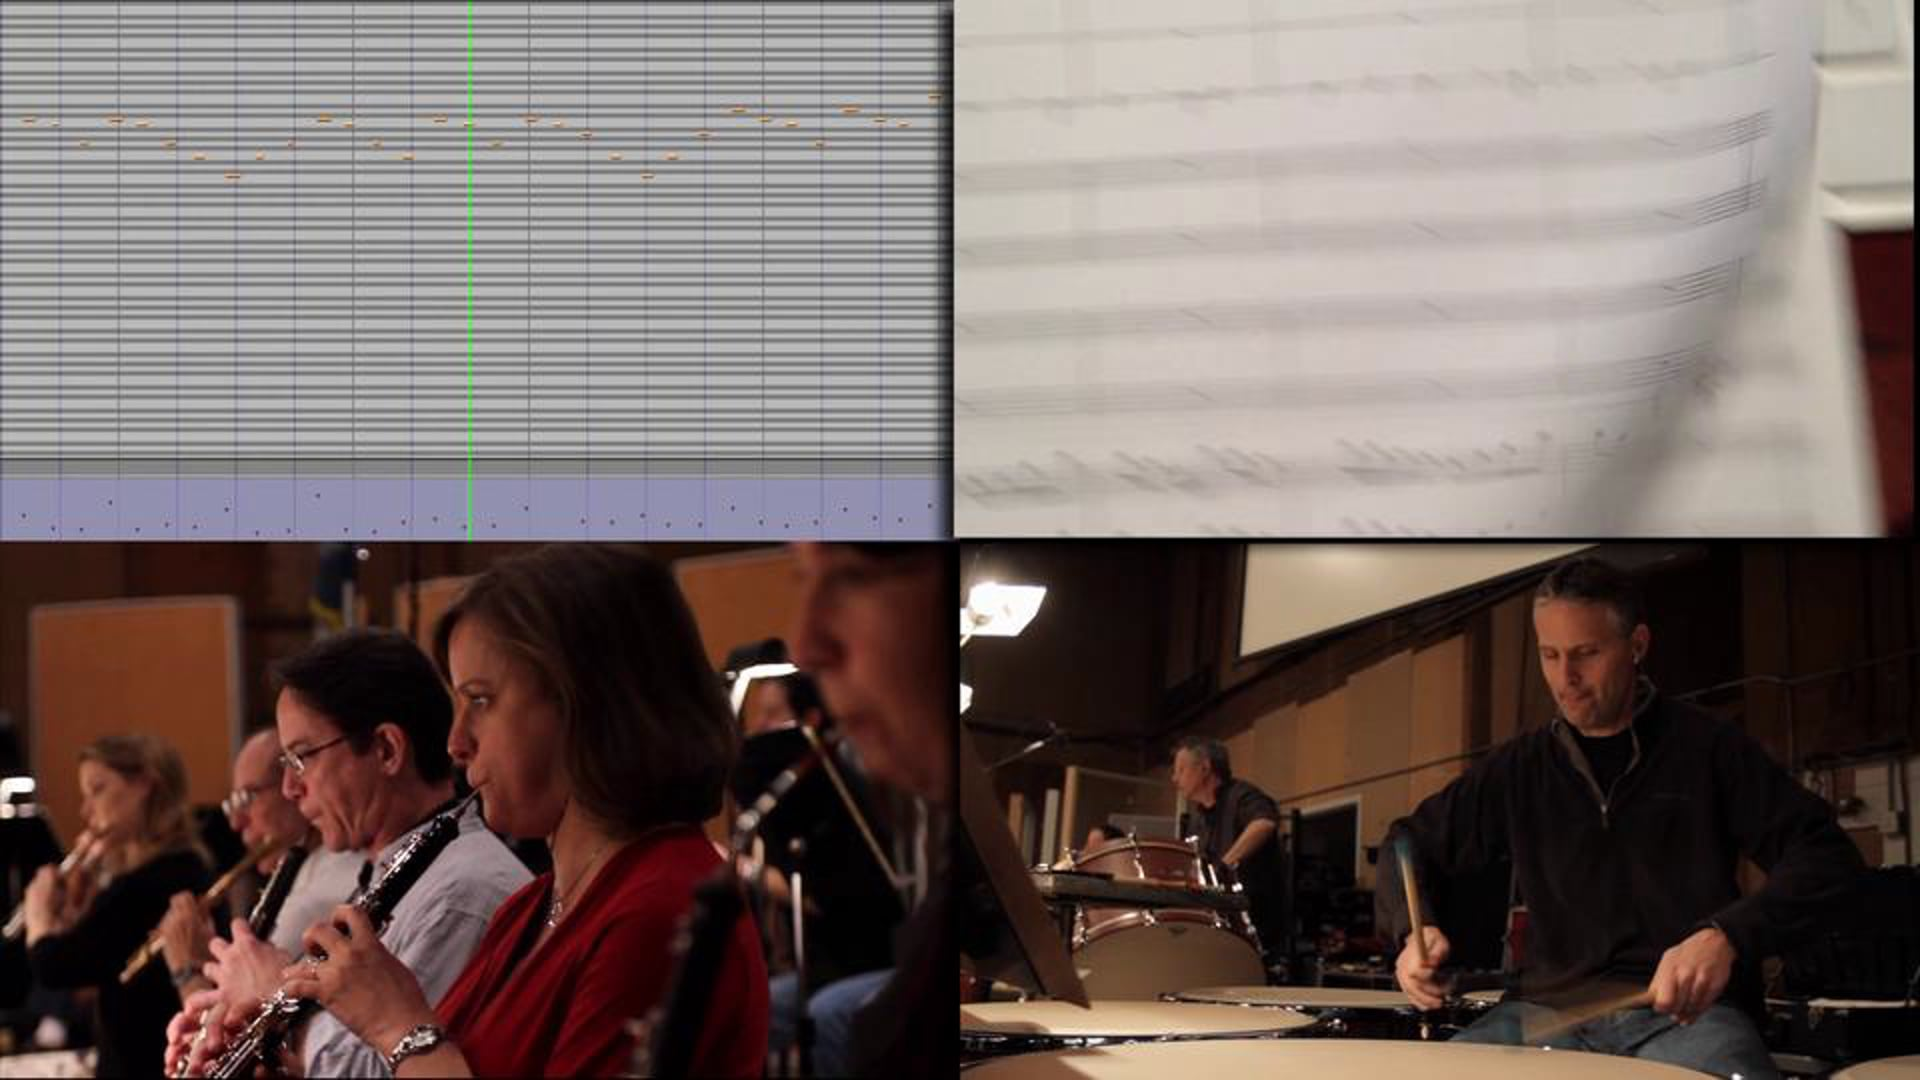 Hollywood Scoring - From Mockup to Orchestration